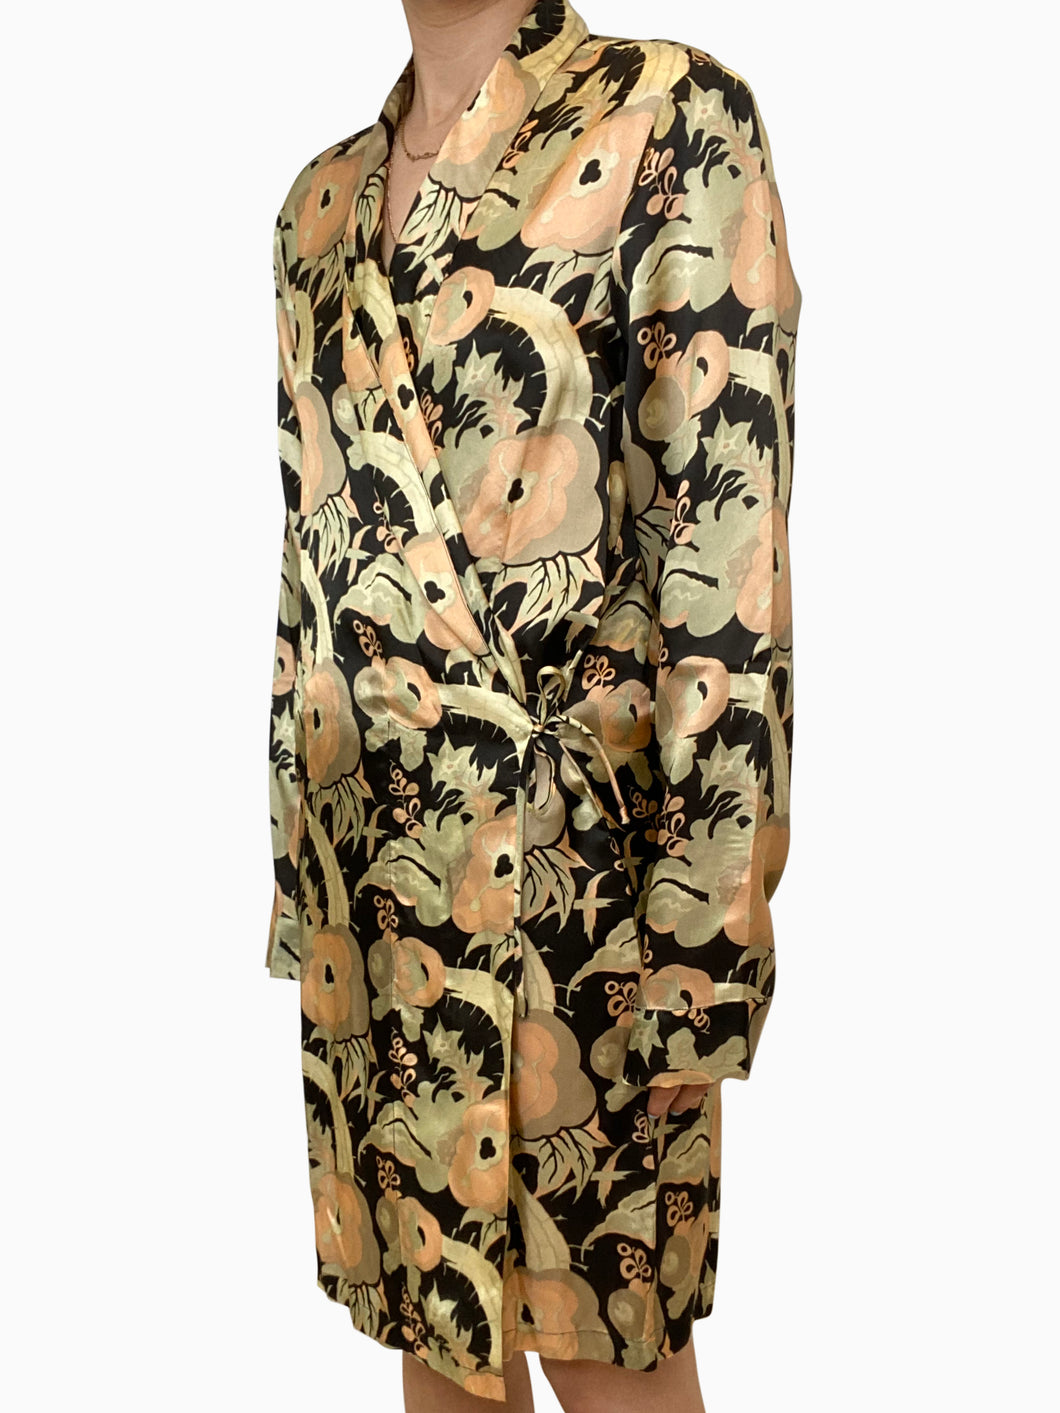 Black, green and peach floral wrap dress - size XS